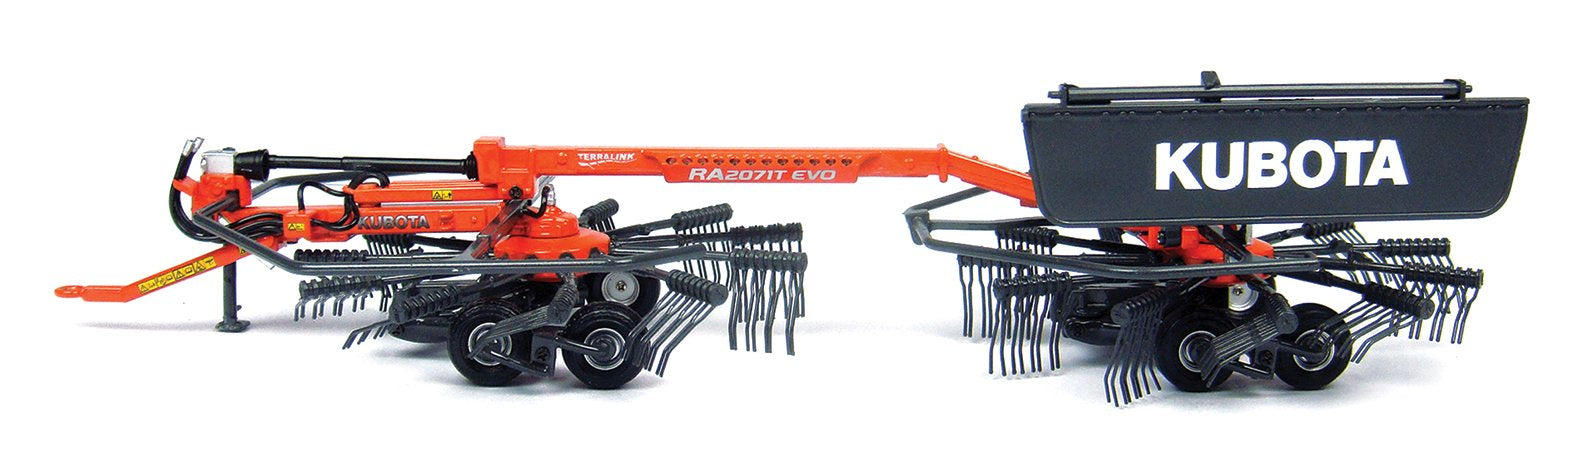 RA2071S Twin Rotary Rake-Collectible